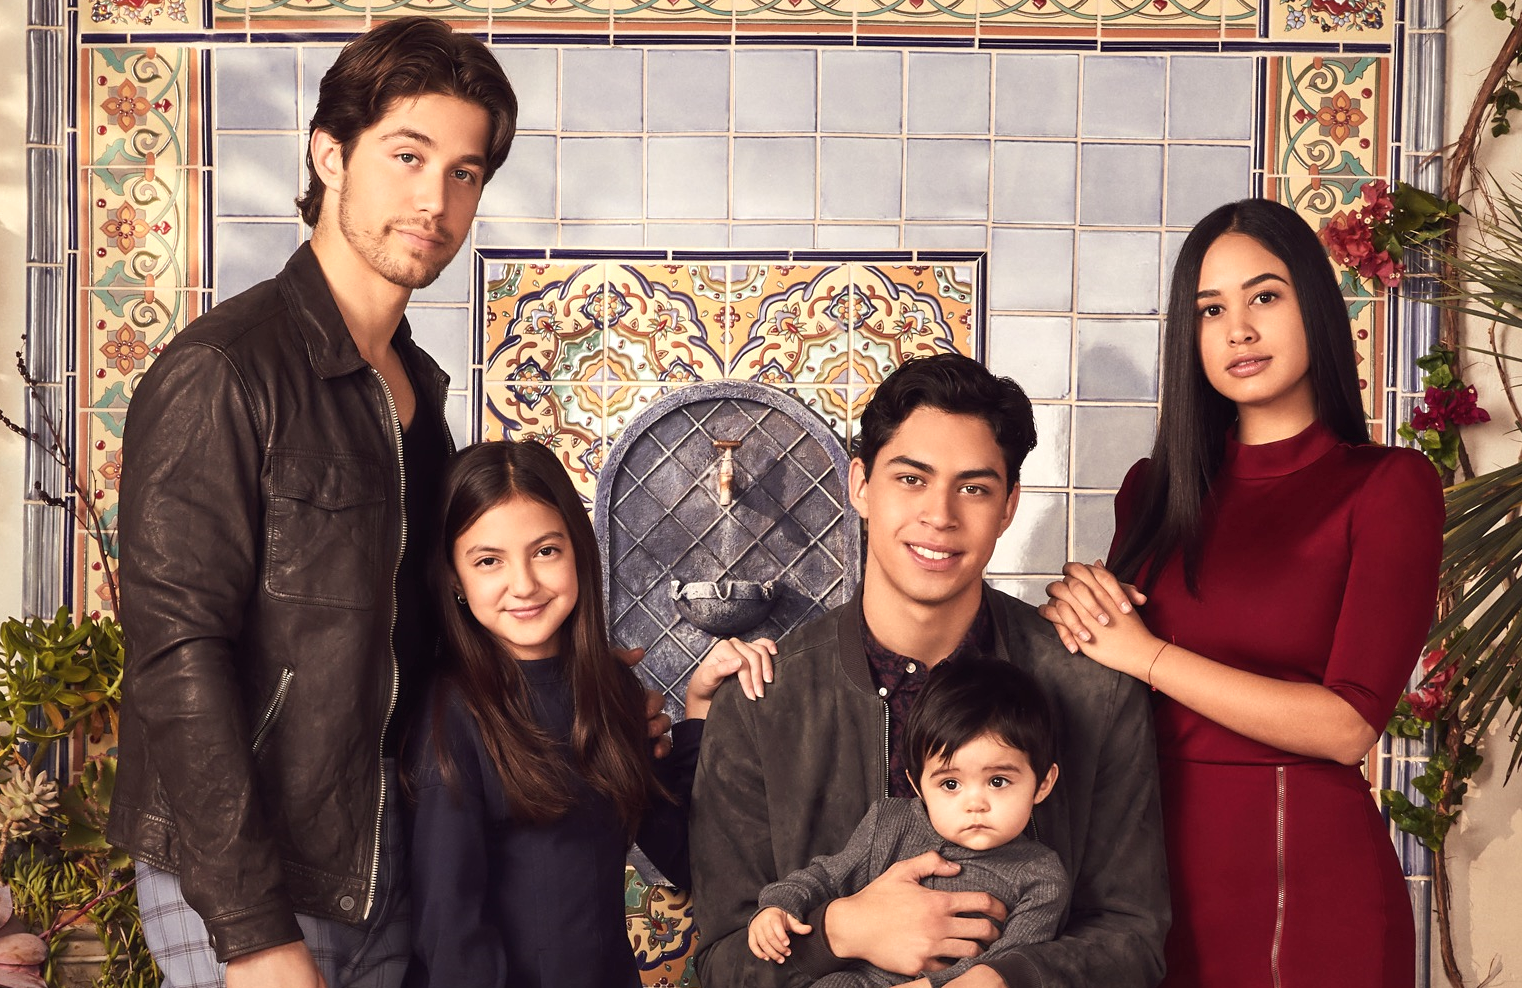 Freeform's Party of Five reboot stars Brandon Larracuente as Emilio Acosta, Elle Paris Legaspi as Valentina Acosta, Niko Guardado as Beto Acosta and Emily Tosta as Lucia Acosta. (Freeform/Nino Munoz)